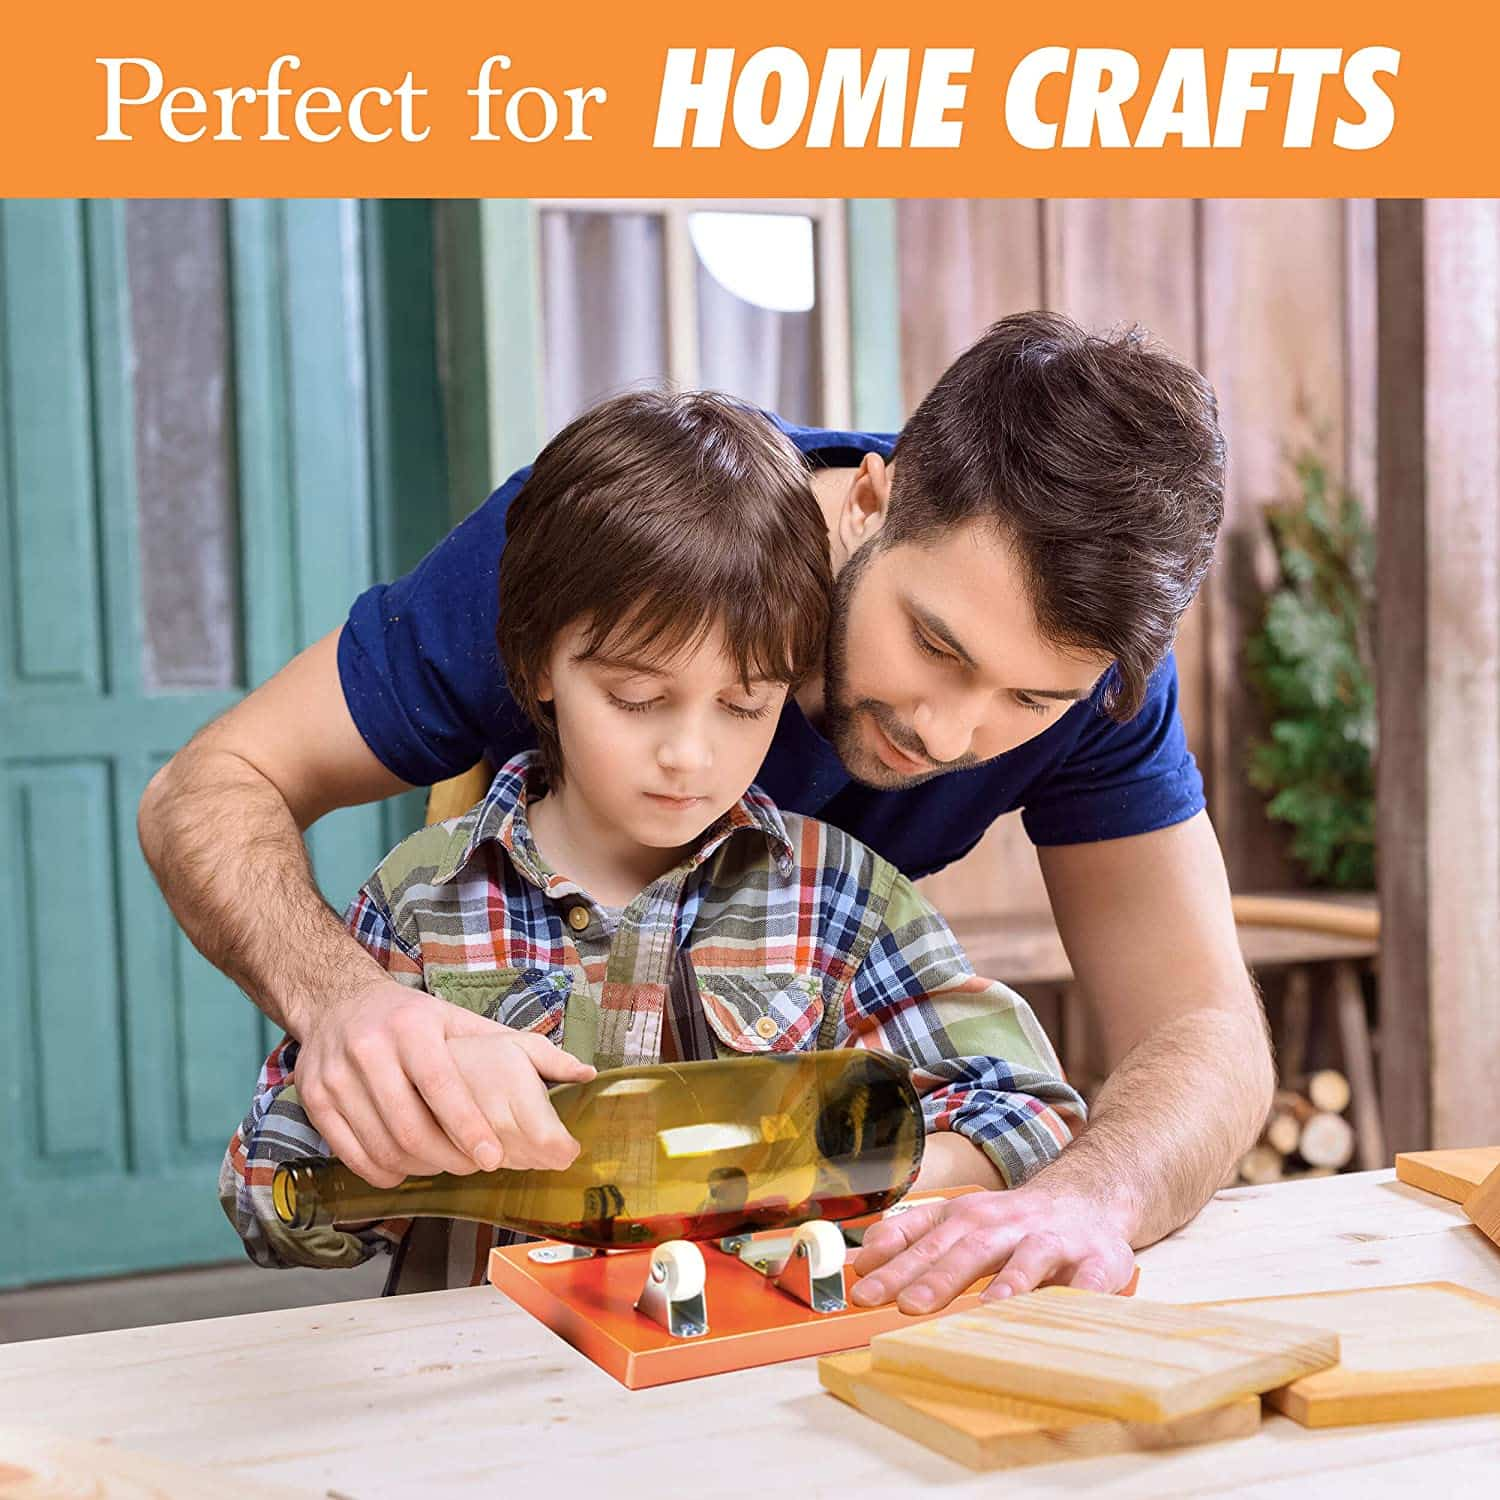 Father guide his son on cutting glass bottle using a bottle cuter frame.